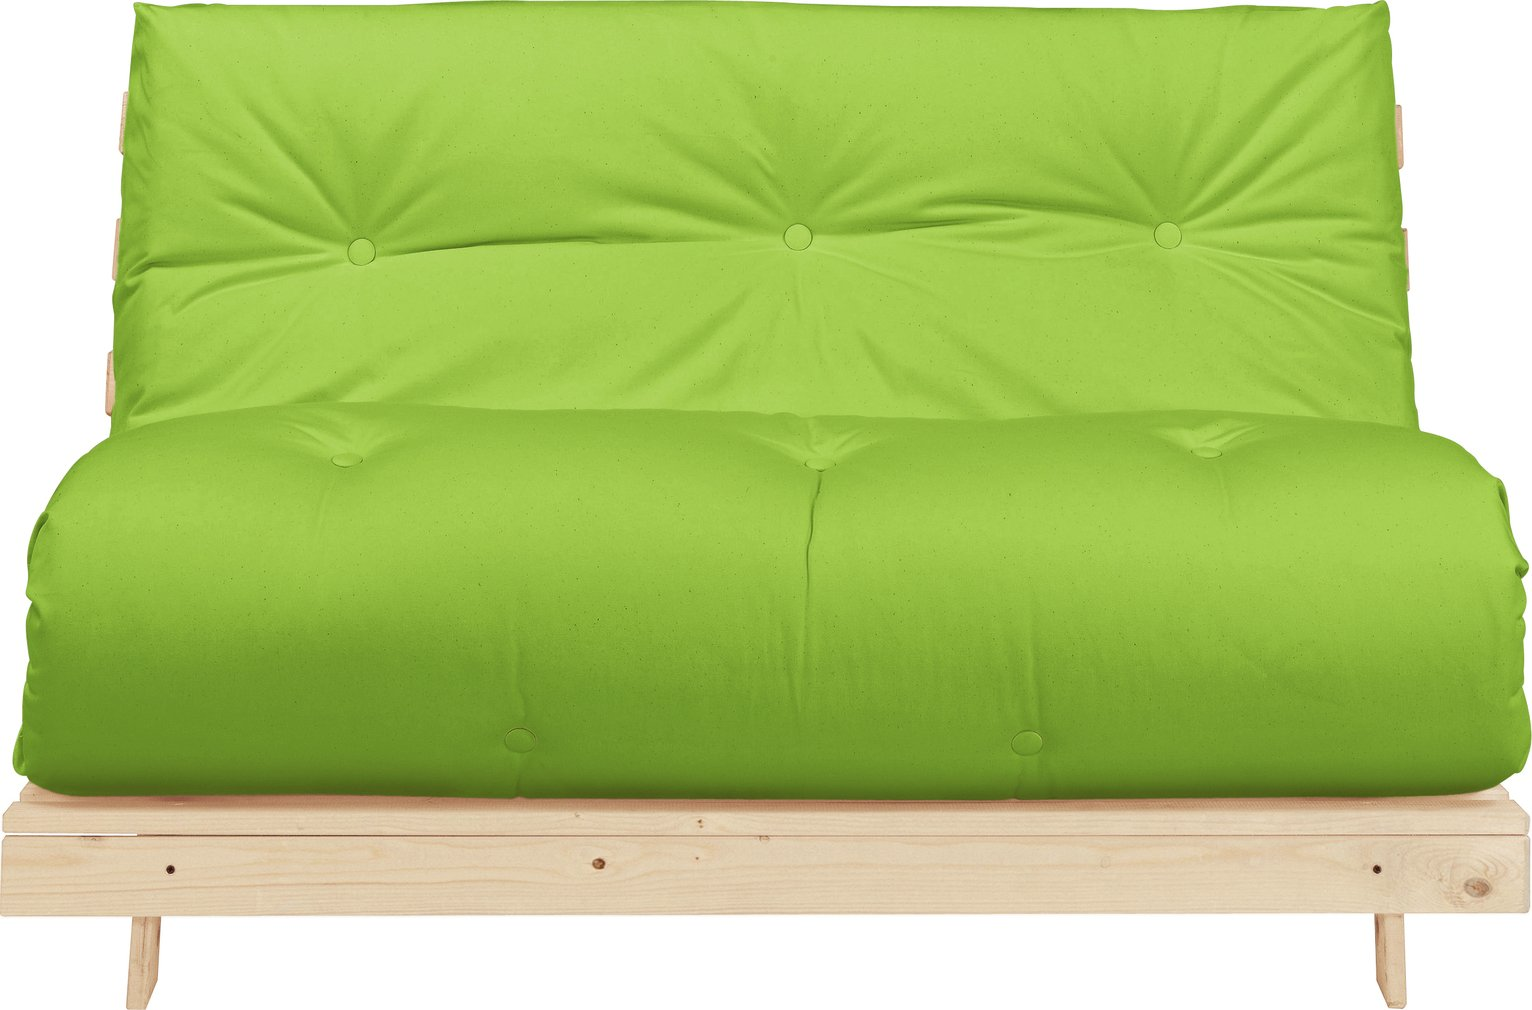 Argos Home Tosa 2 Seater Futon Sofa Bed   Green346/5934